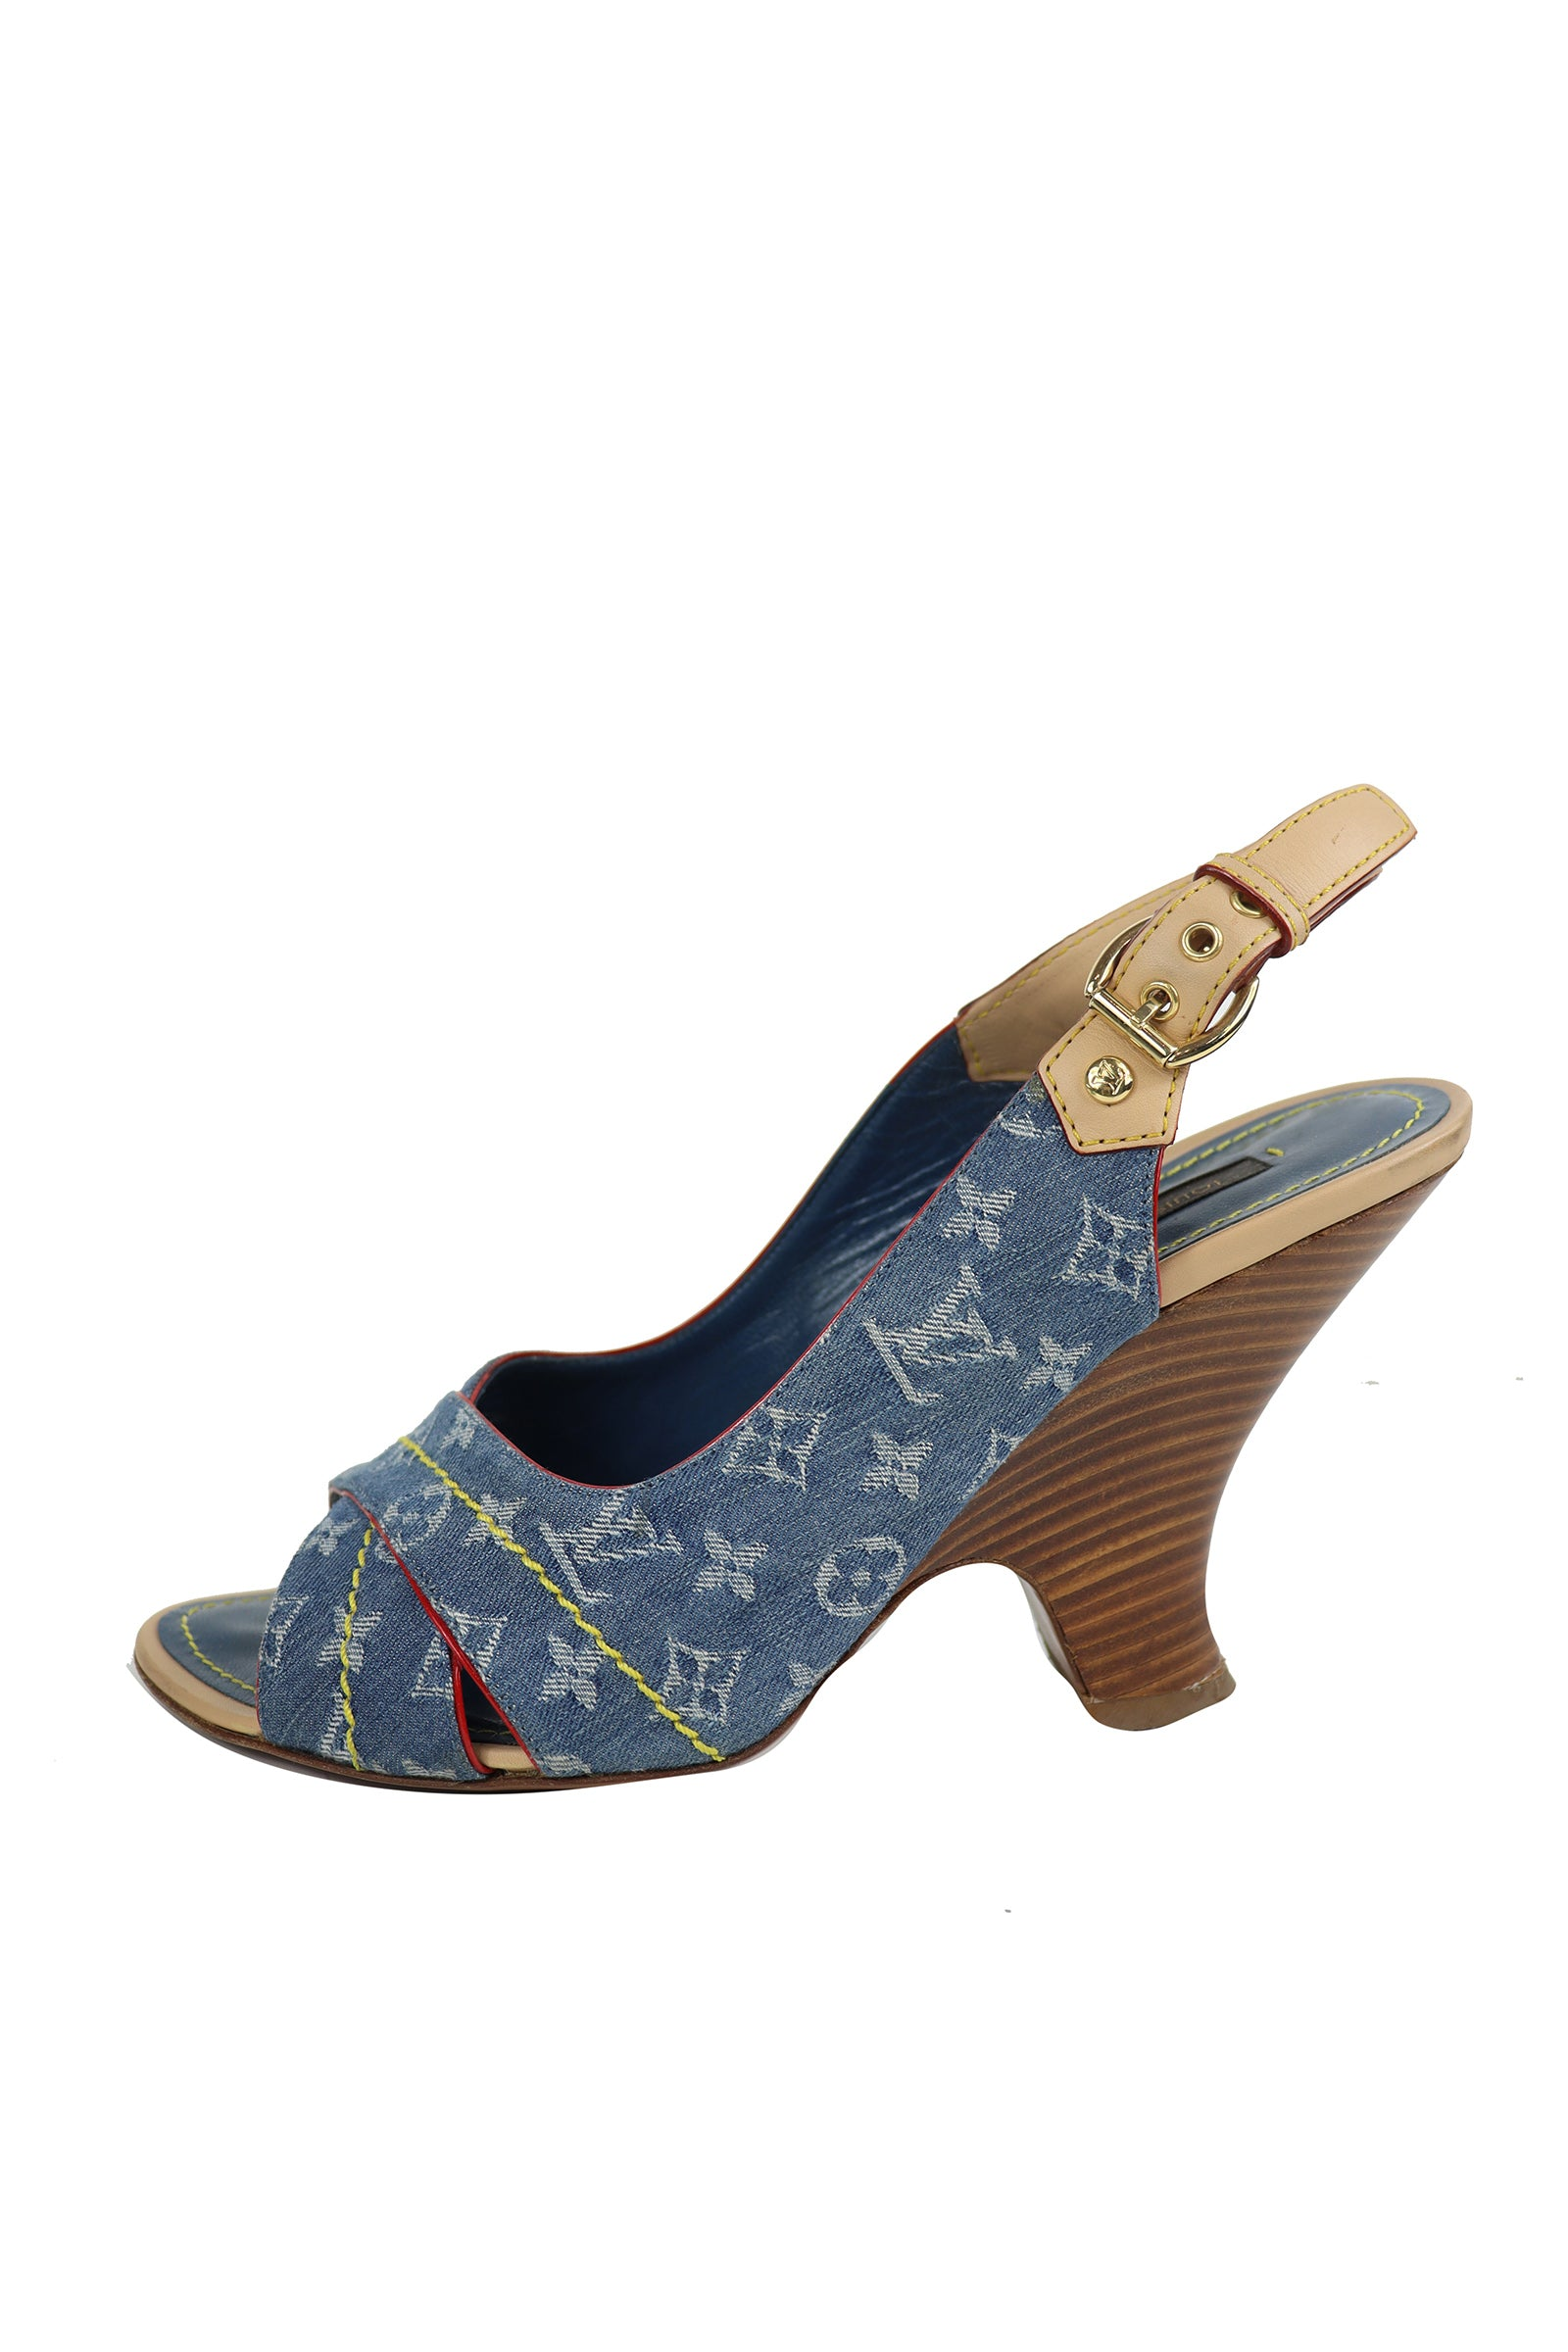 Louis Vuitton Logo Wedge Sandals in Denim,  Yellow Stitches and Red Contour Size 38 (EU)